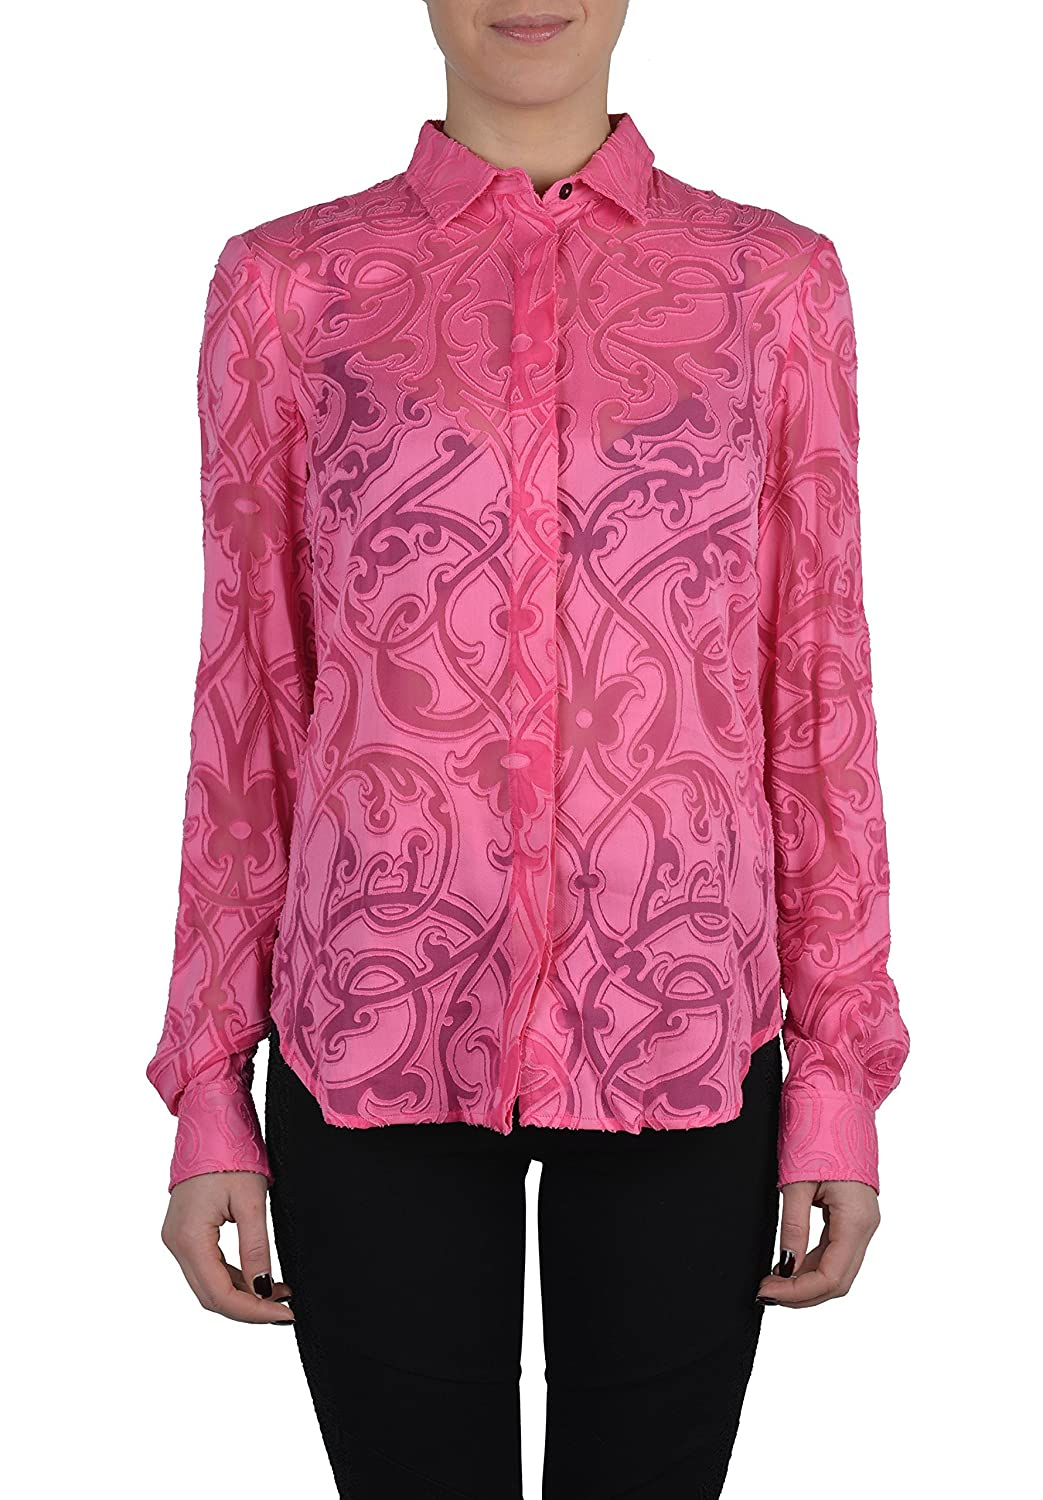 Just Cavalli Silk Pink Button Front See Through Long Sleeves Blouse US S IT 40